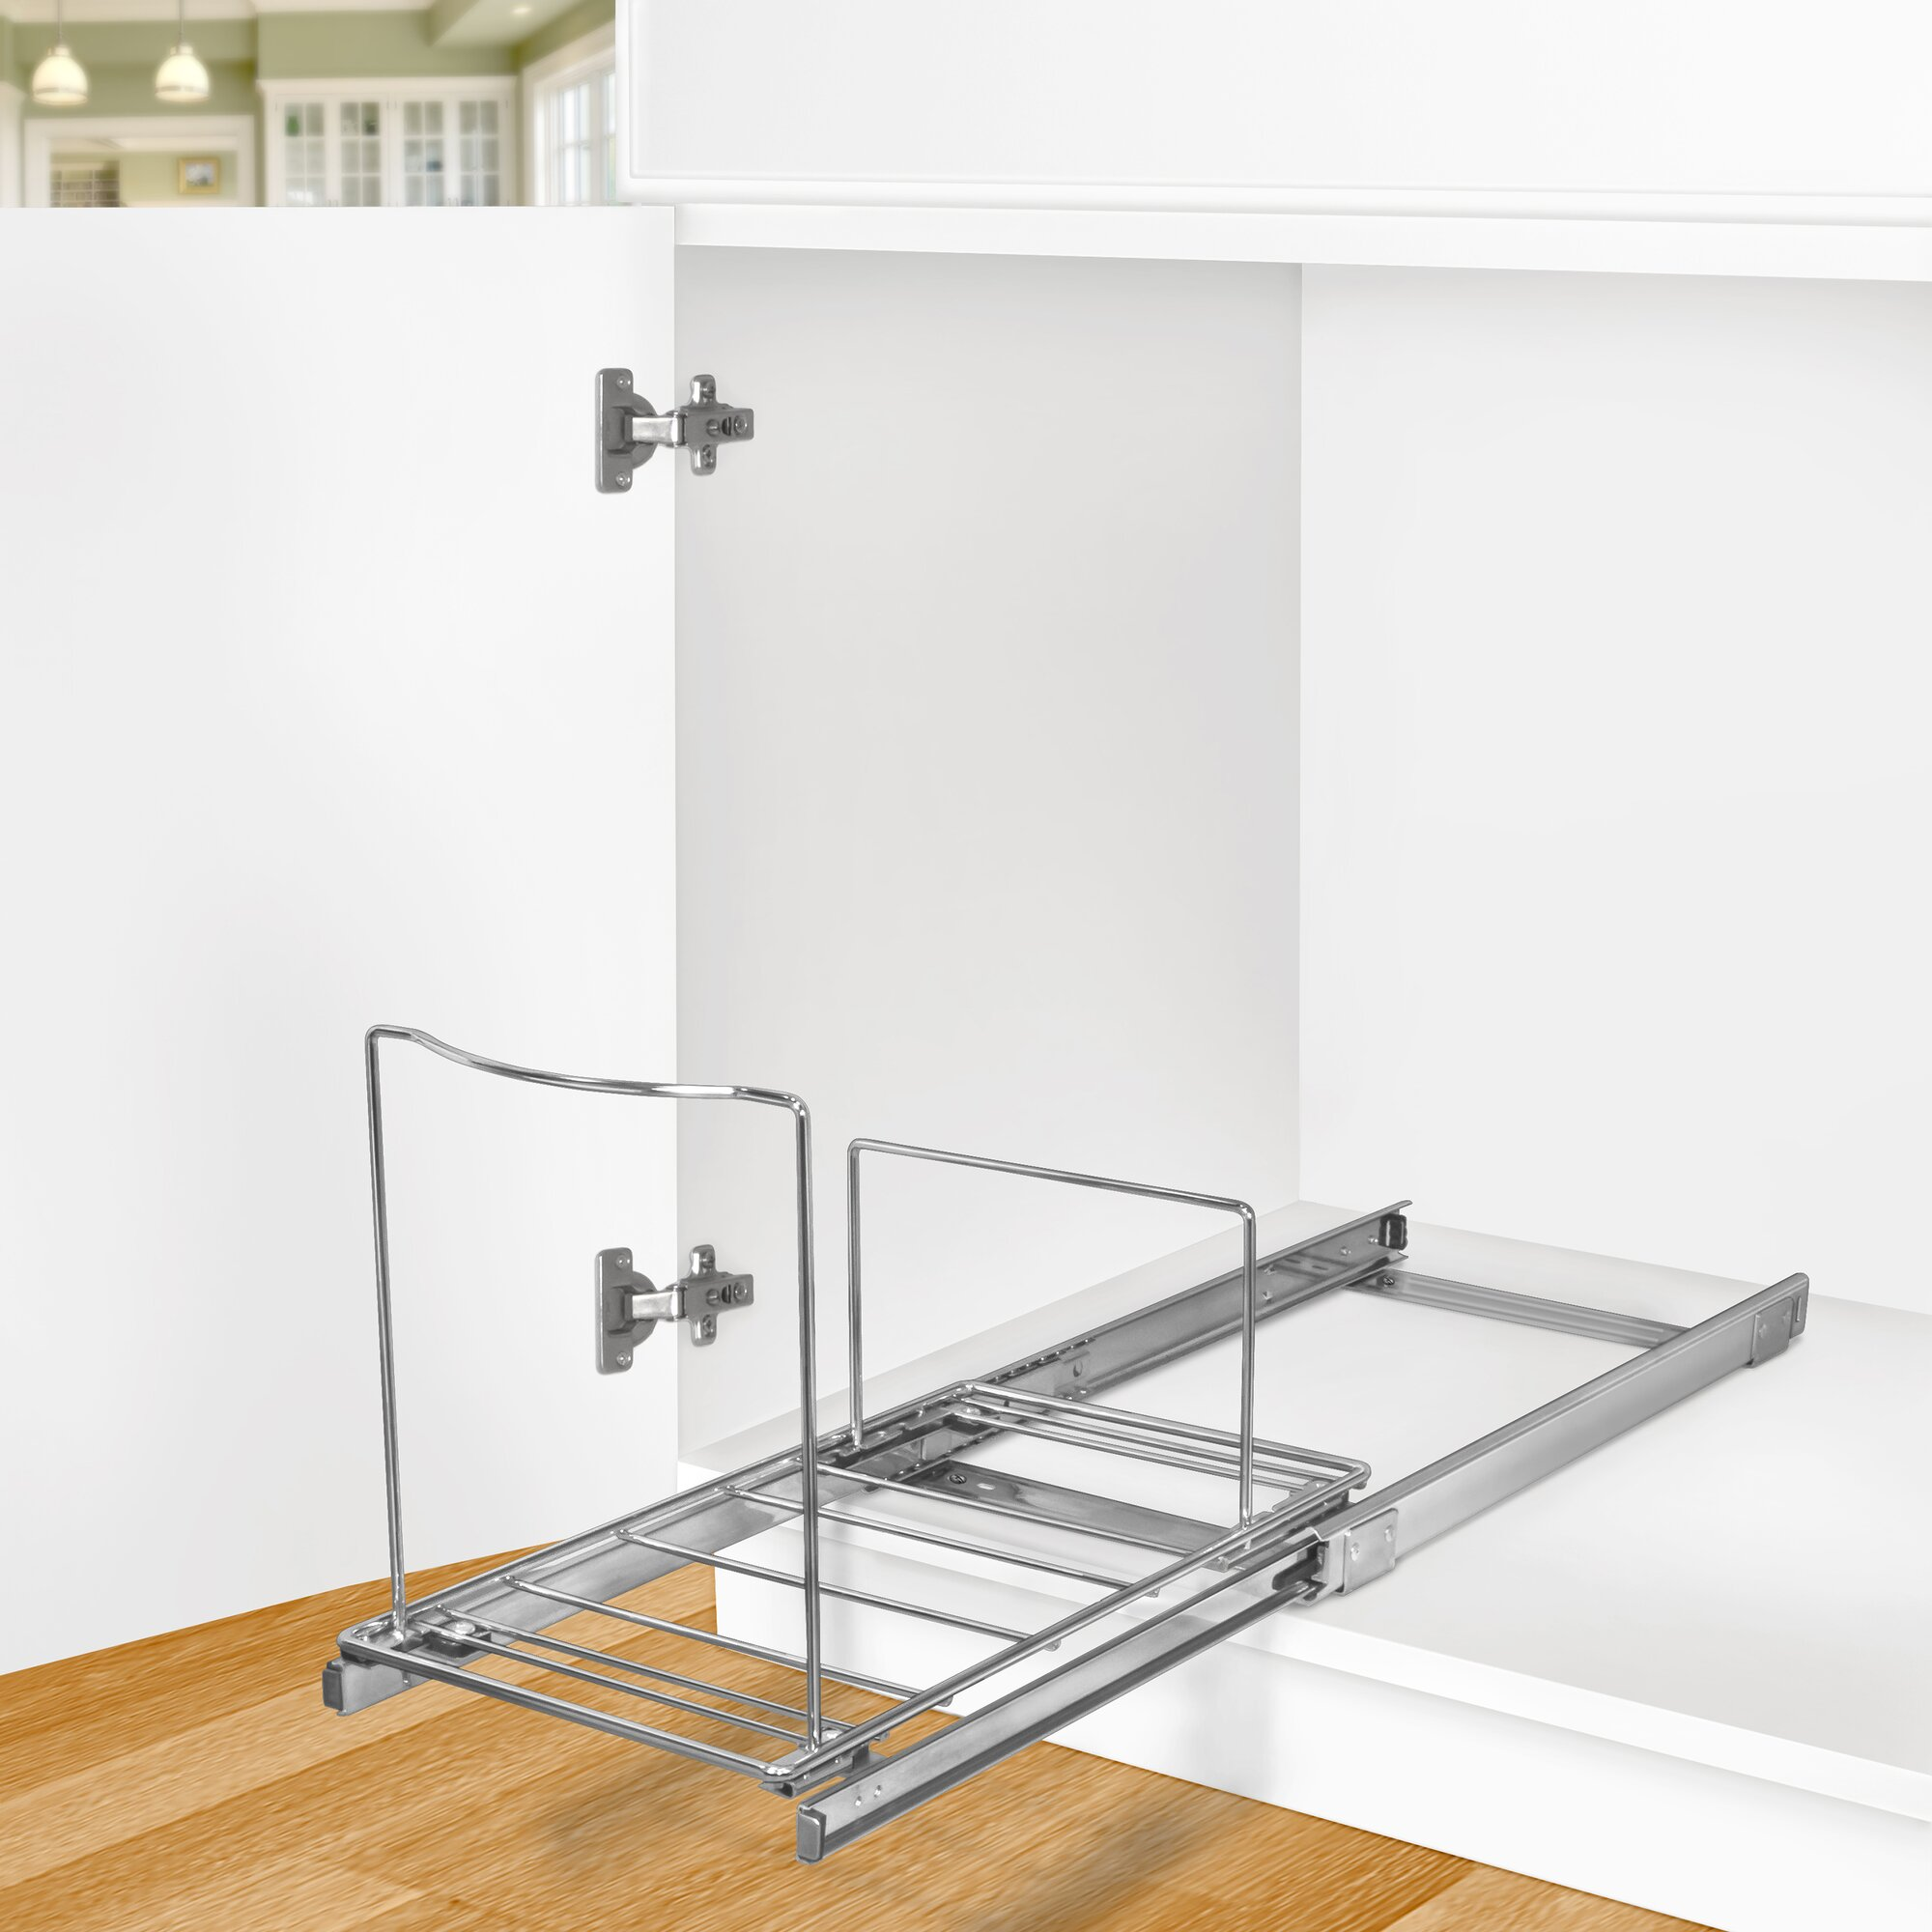 Lynk Roll Out Bin Holder - Pull Out Drawer - Under Cabinet Sliding ...